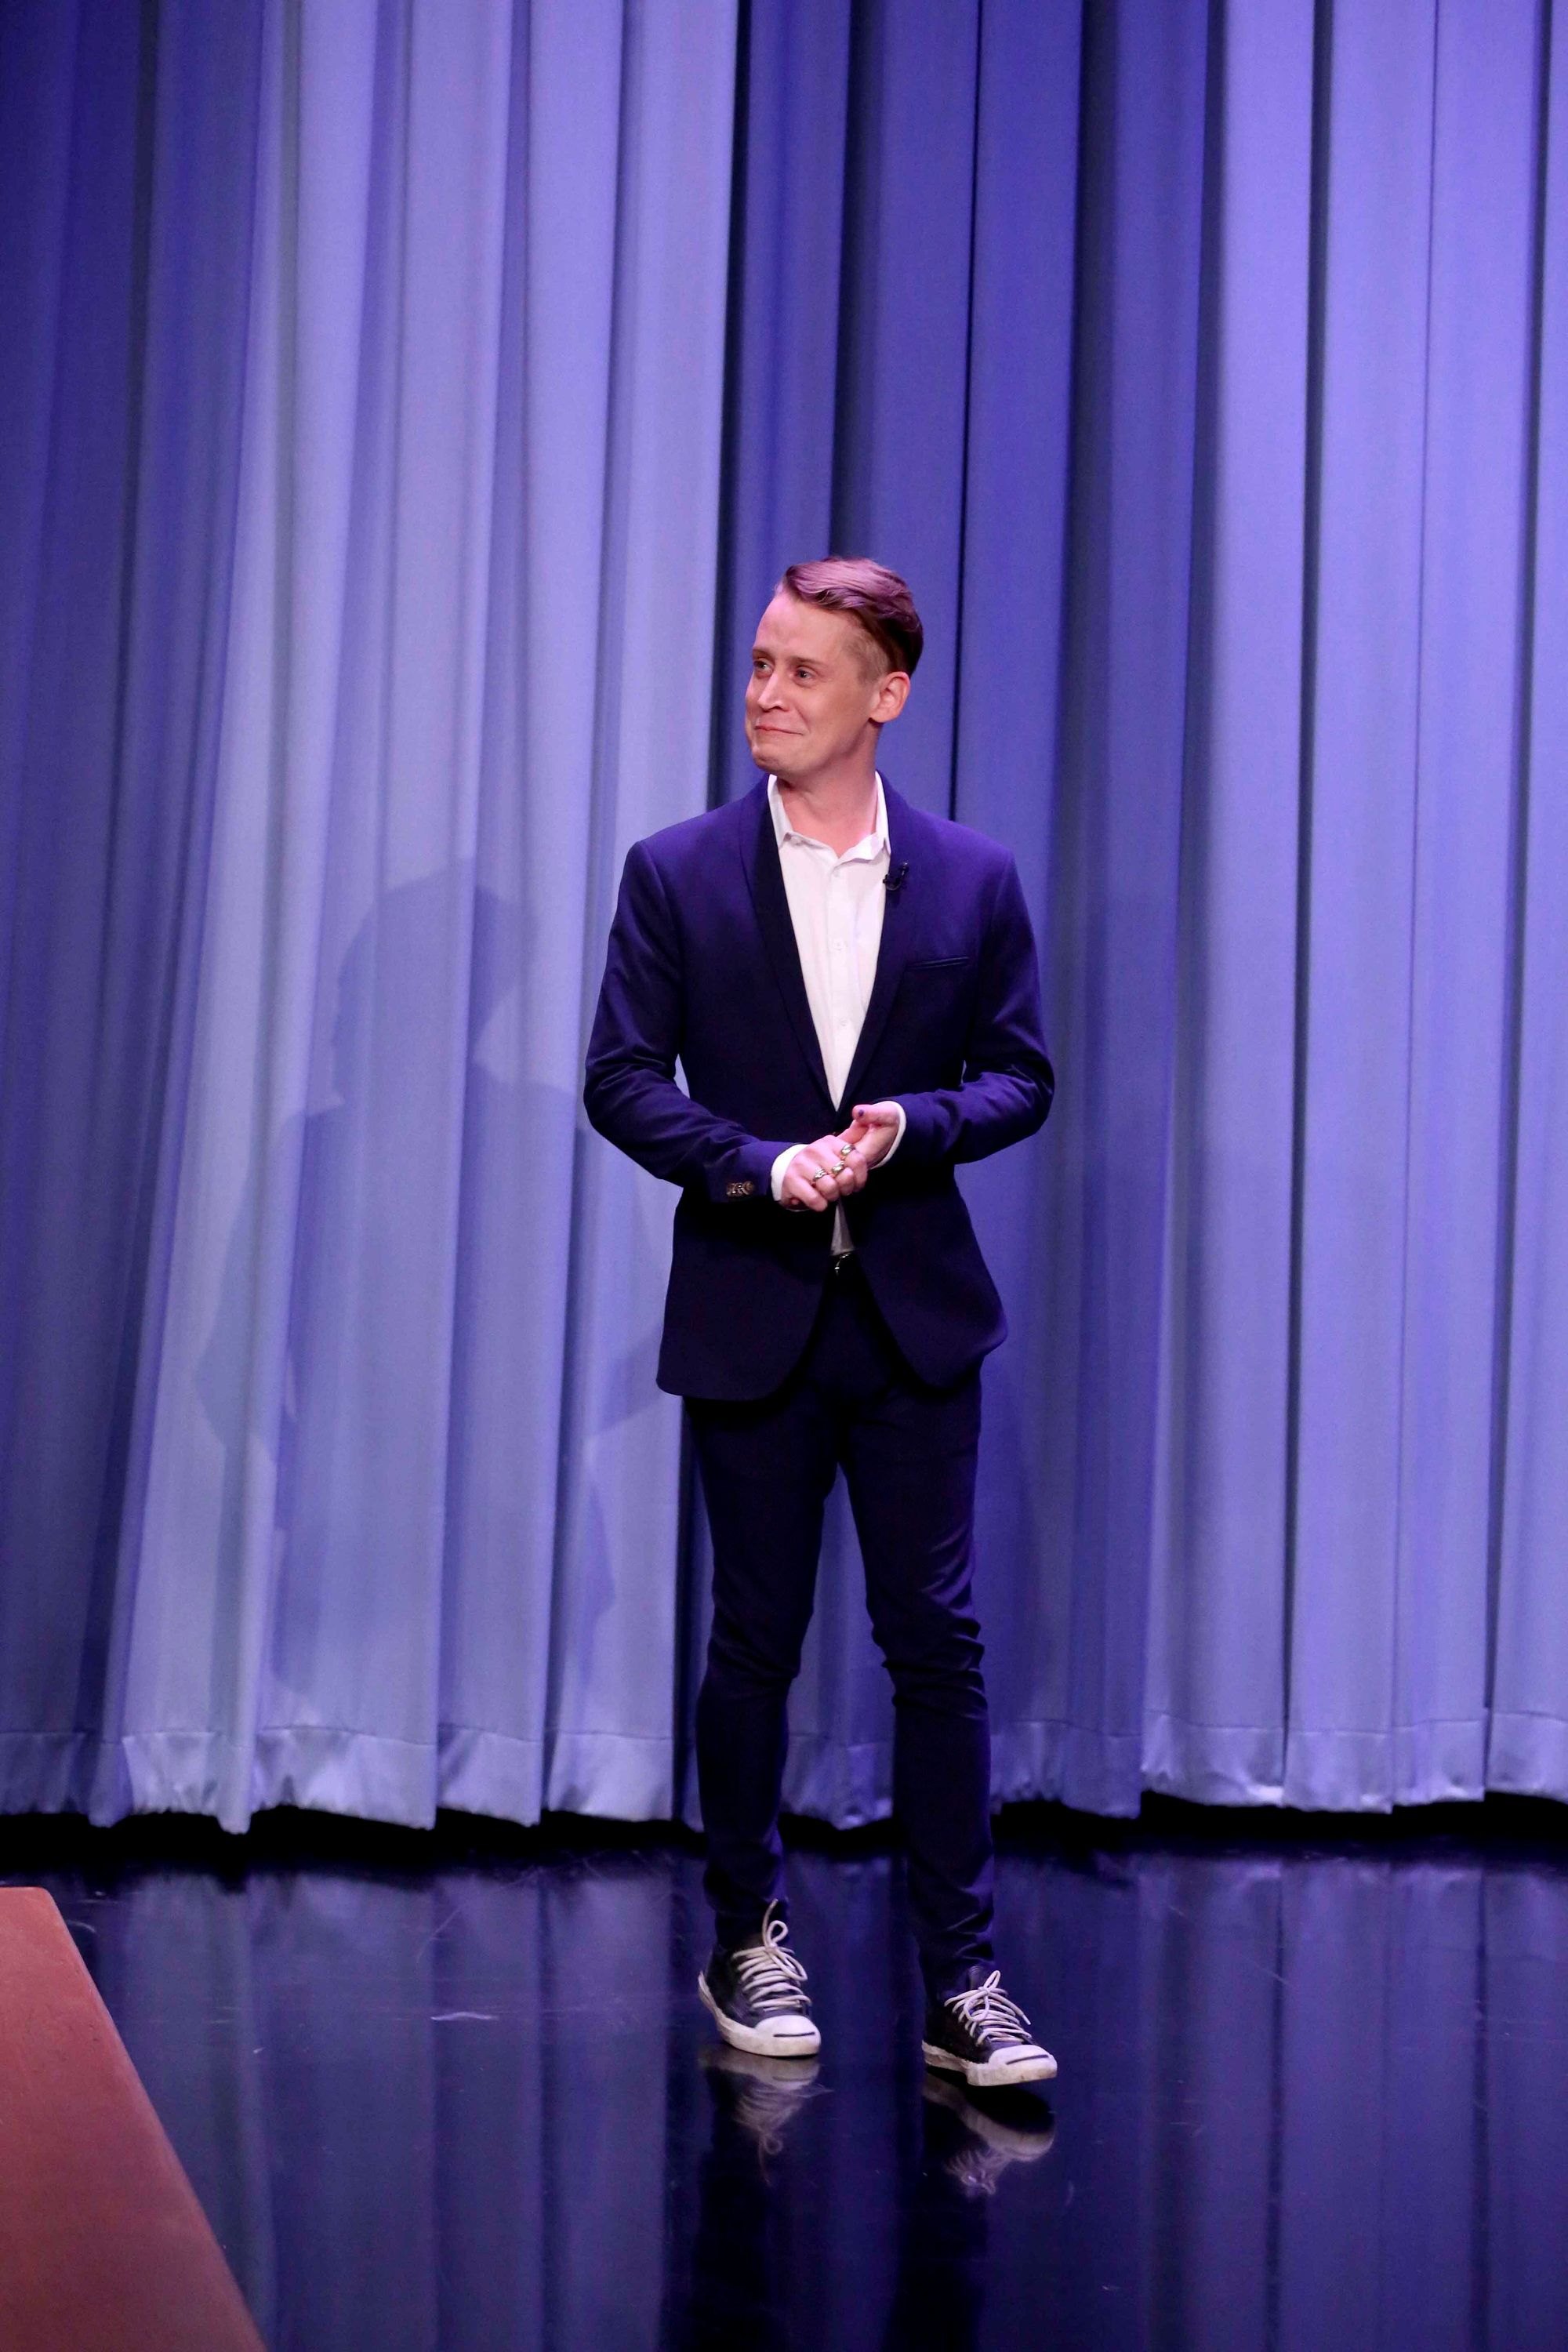 THE TONIGHT SHOW STARRING JIMMY FALLON -- Episode 0825 -- Pictured: Actor Macaulay Culkin arrives on March 2, 2018 -- (Photo by: Andrew Lipovsky/NBC/NBCU Photo Bank via Getty Images)